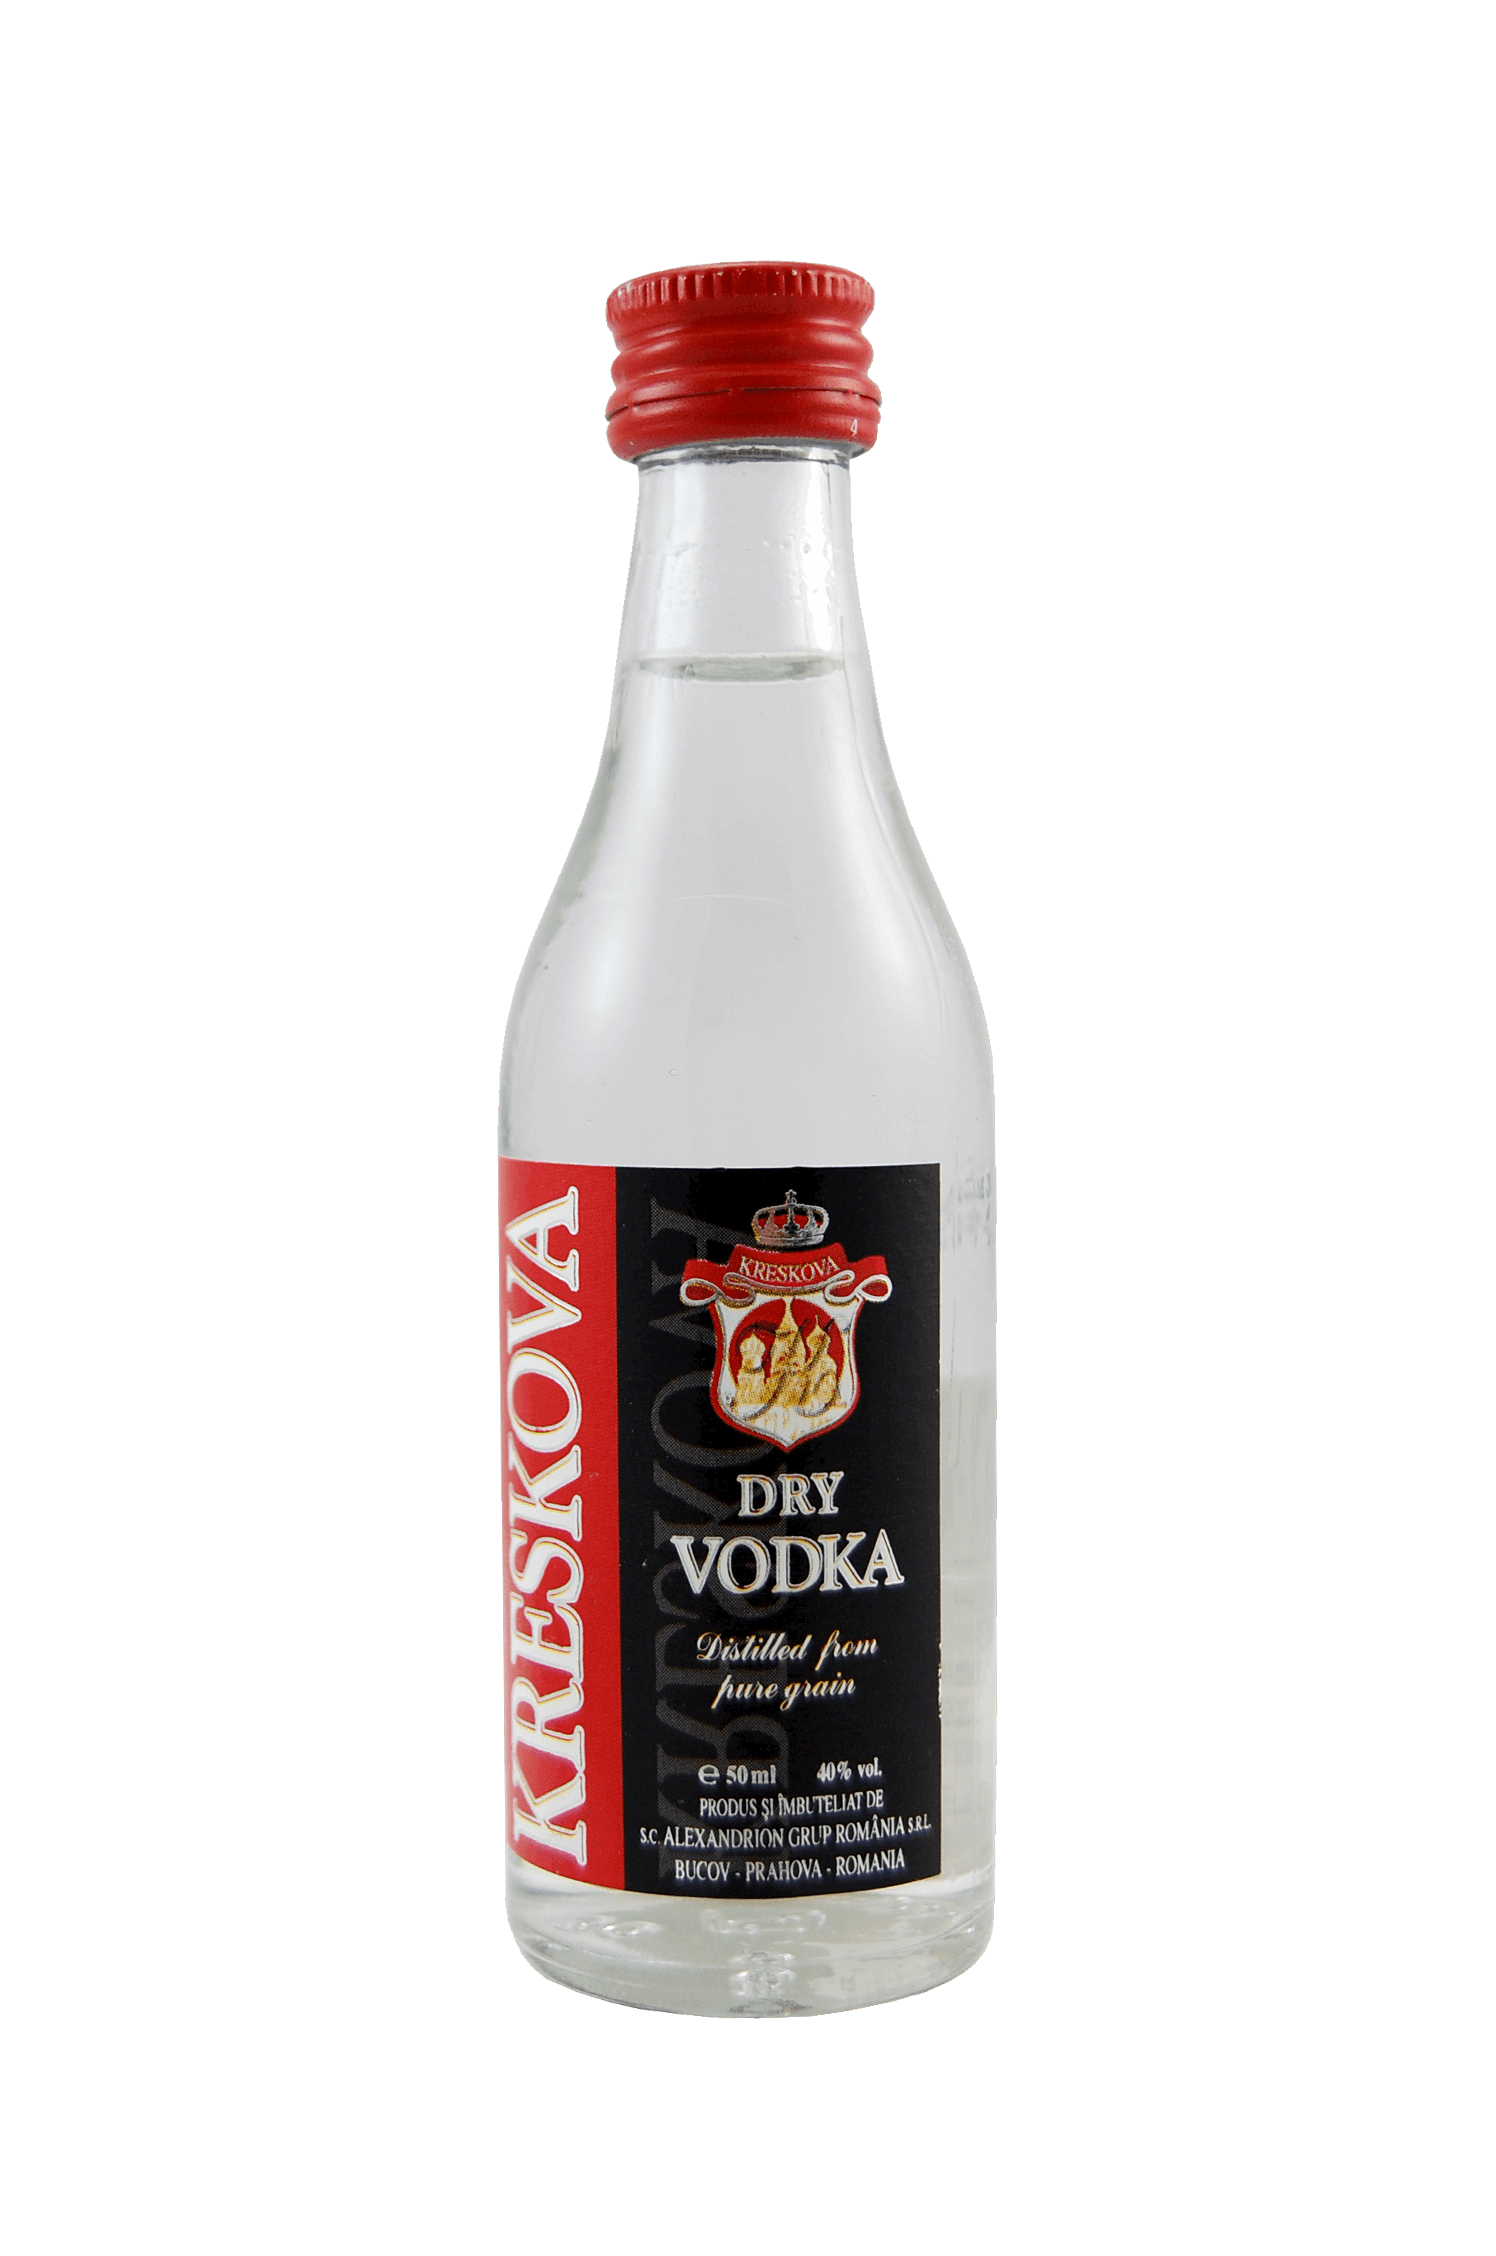 Kreskova Dry Vodka